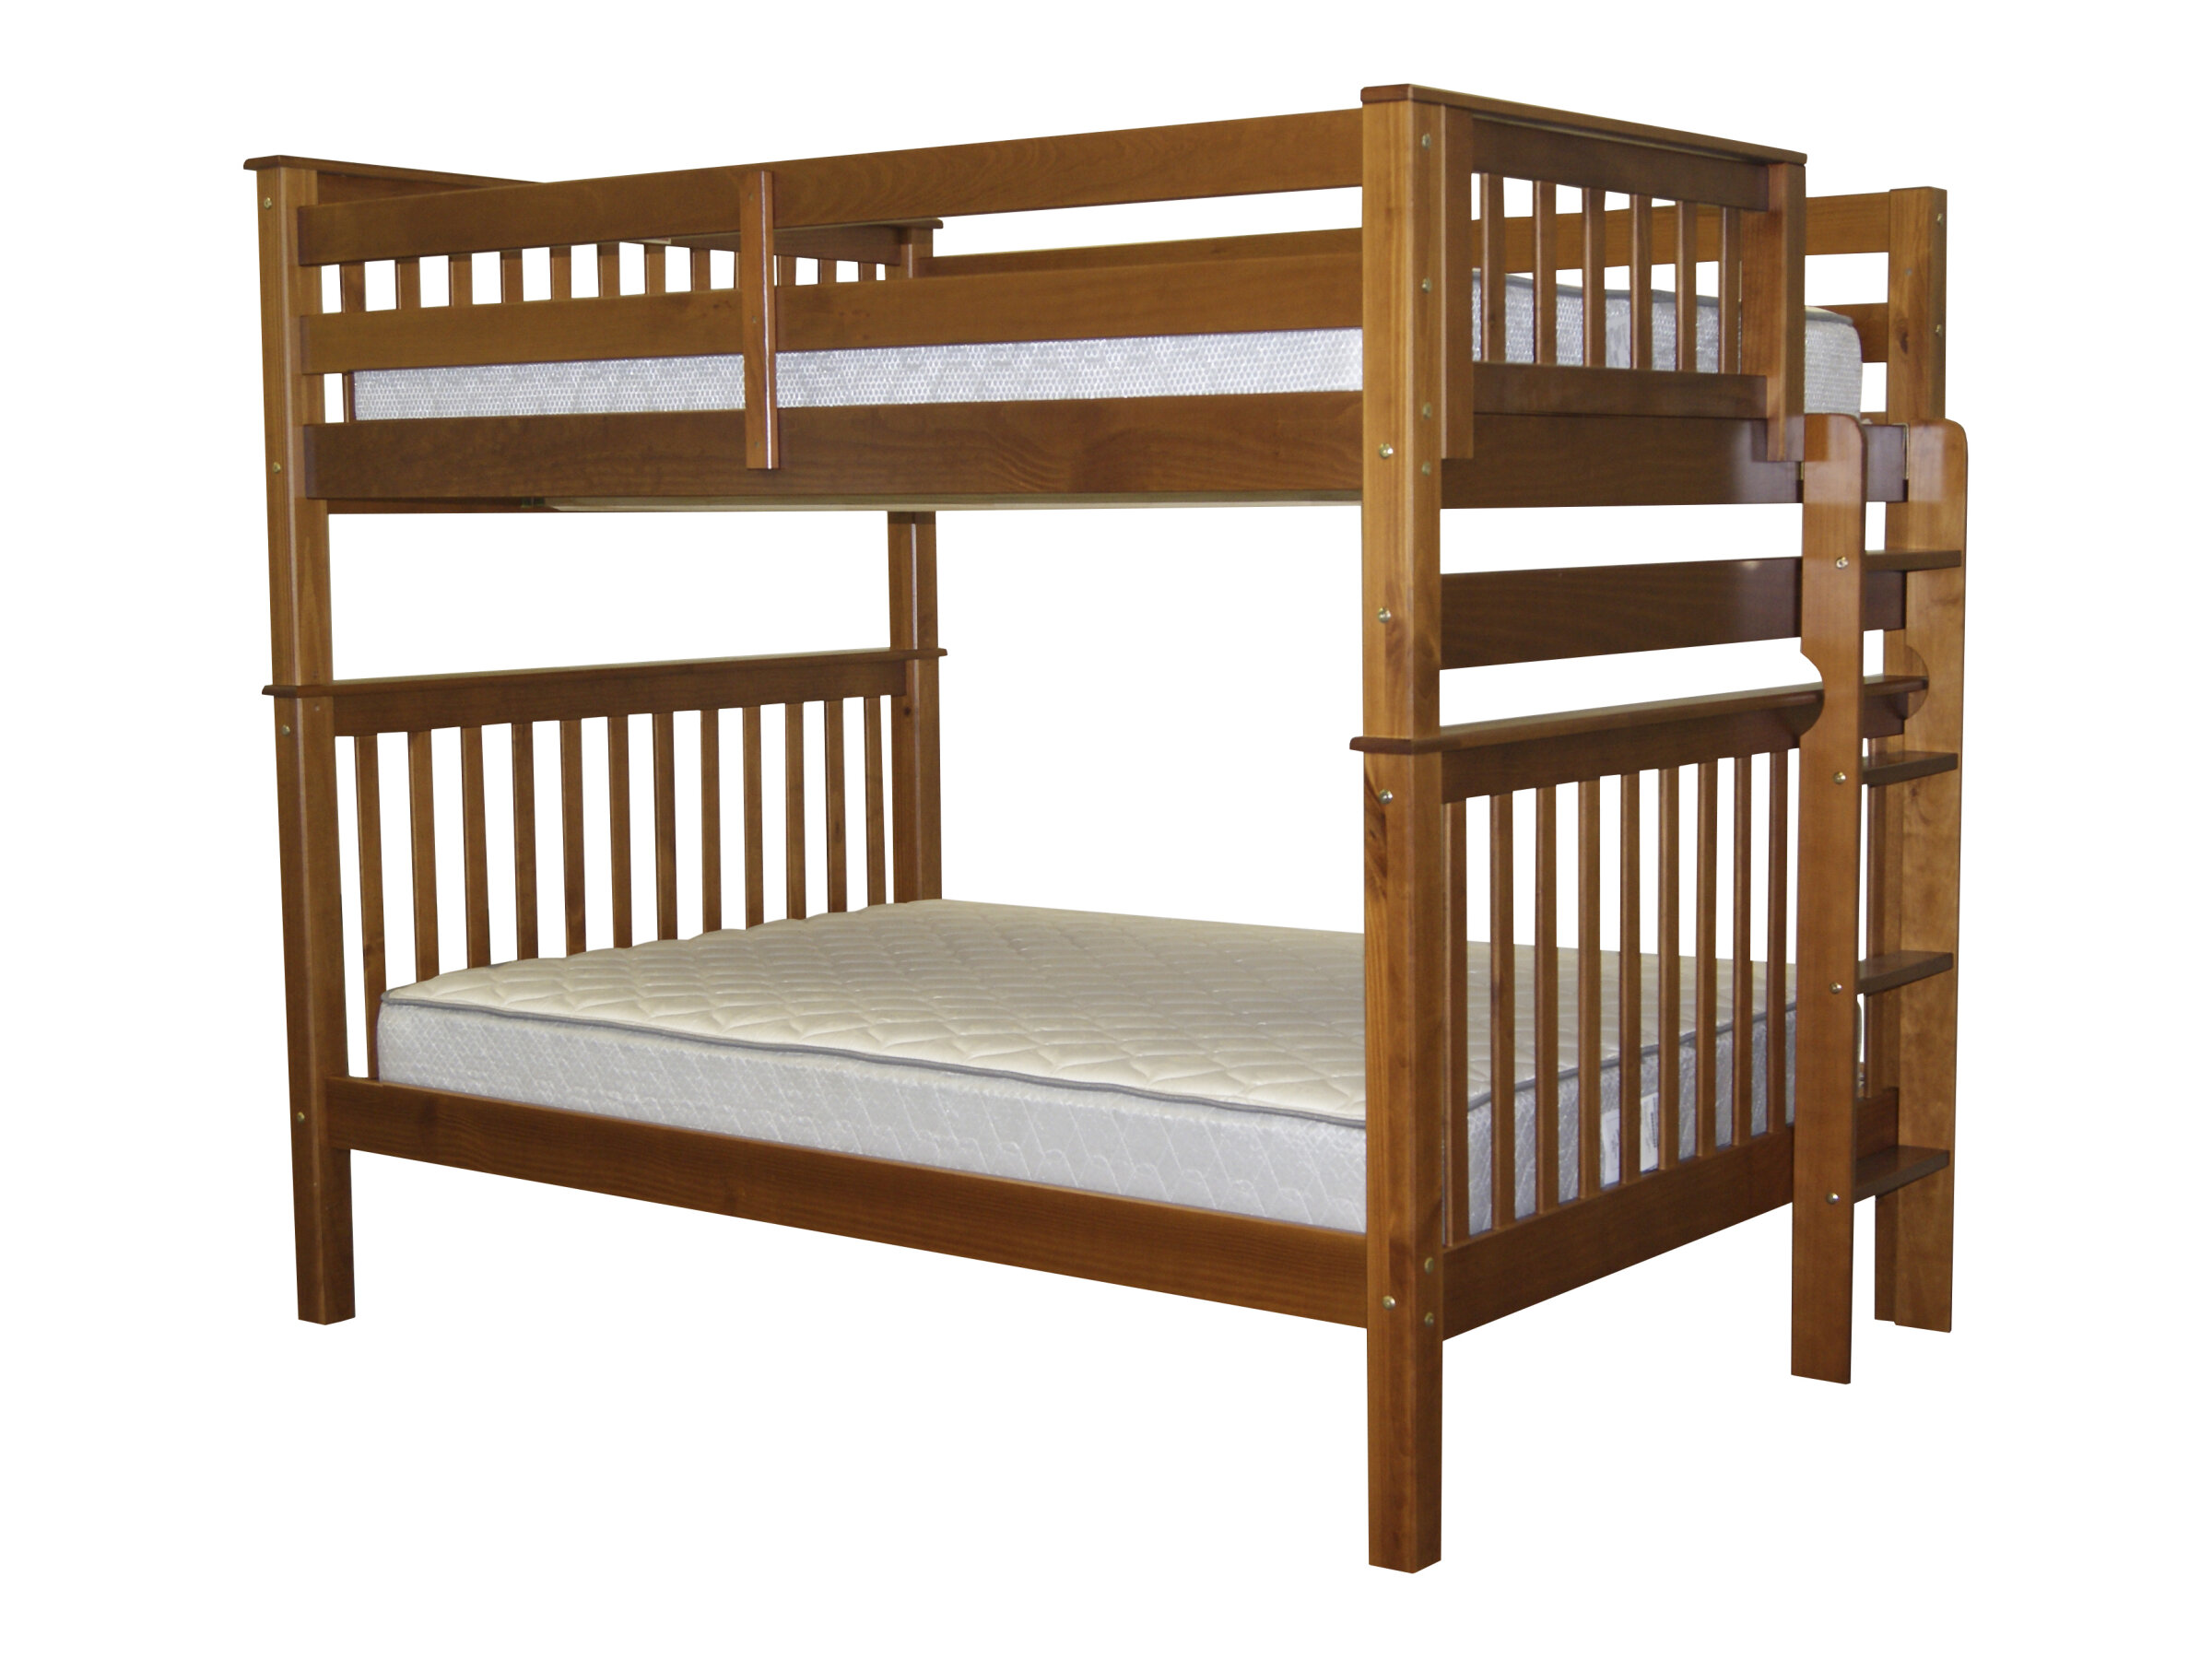 bunk bed full america hei of basketball wid qlt enthusiast p prod furniture sports over